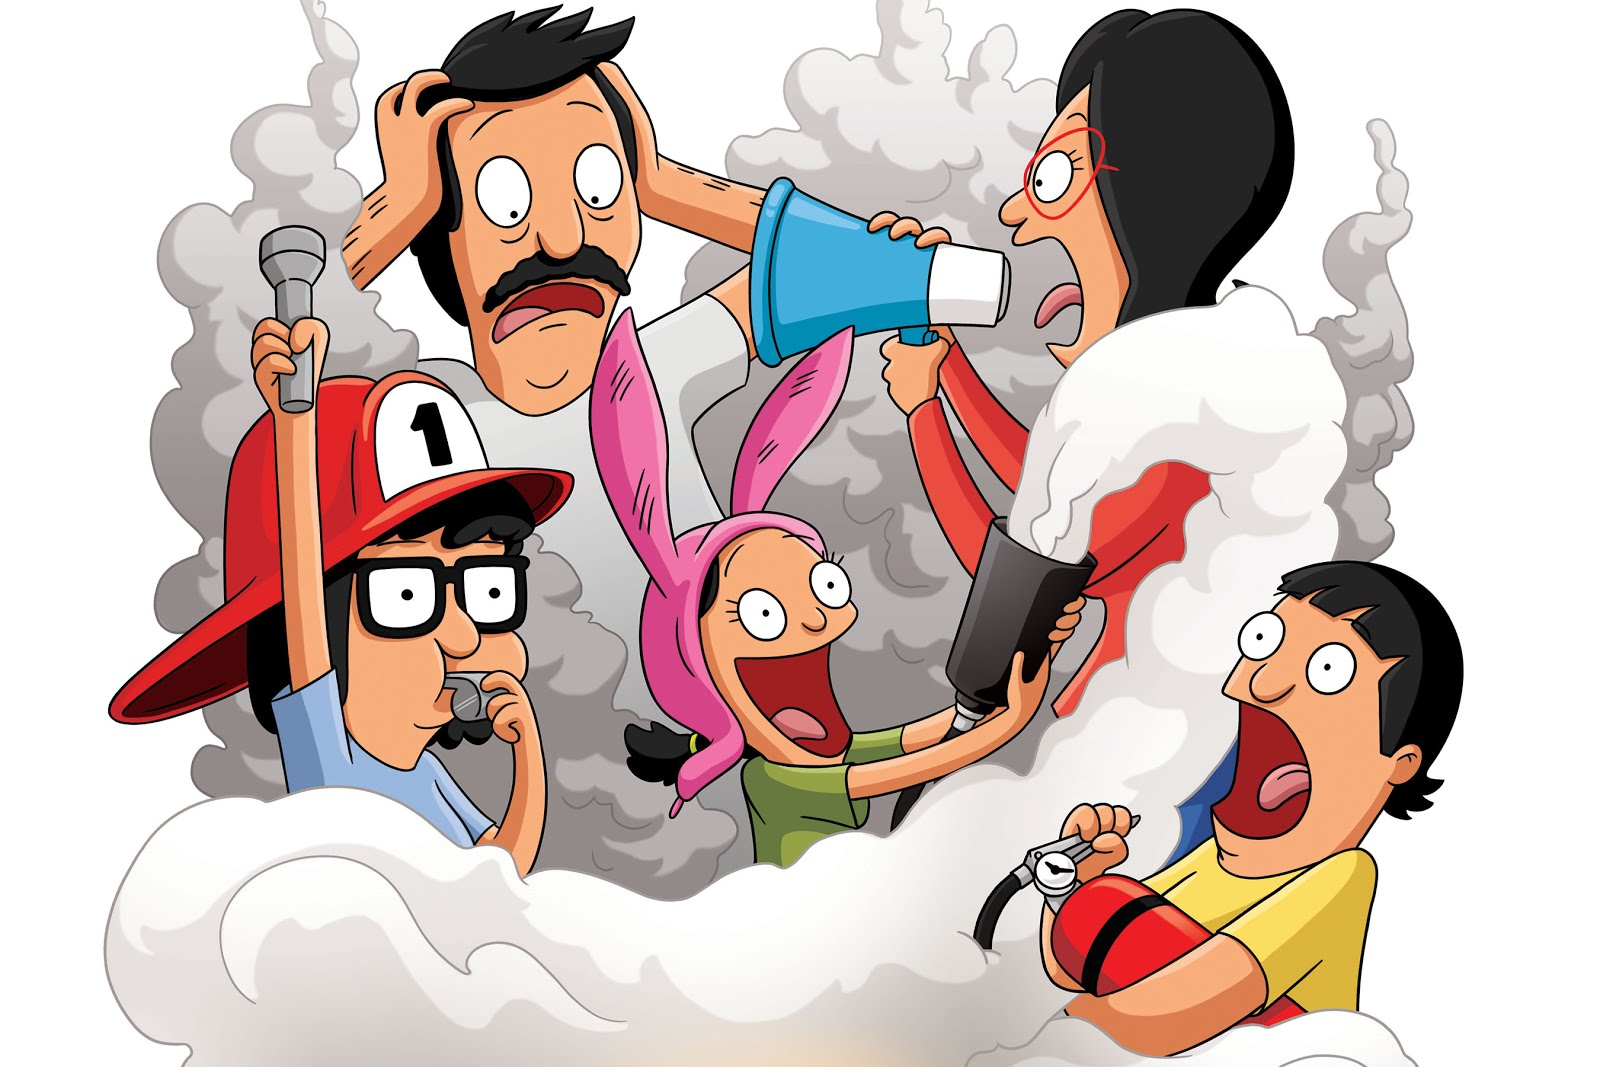 It may be too late for another Simpson's movie but a Bob's Burgers movie sounds great!